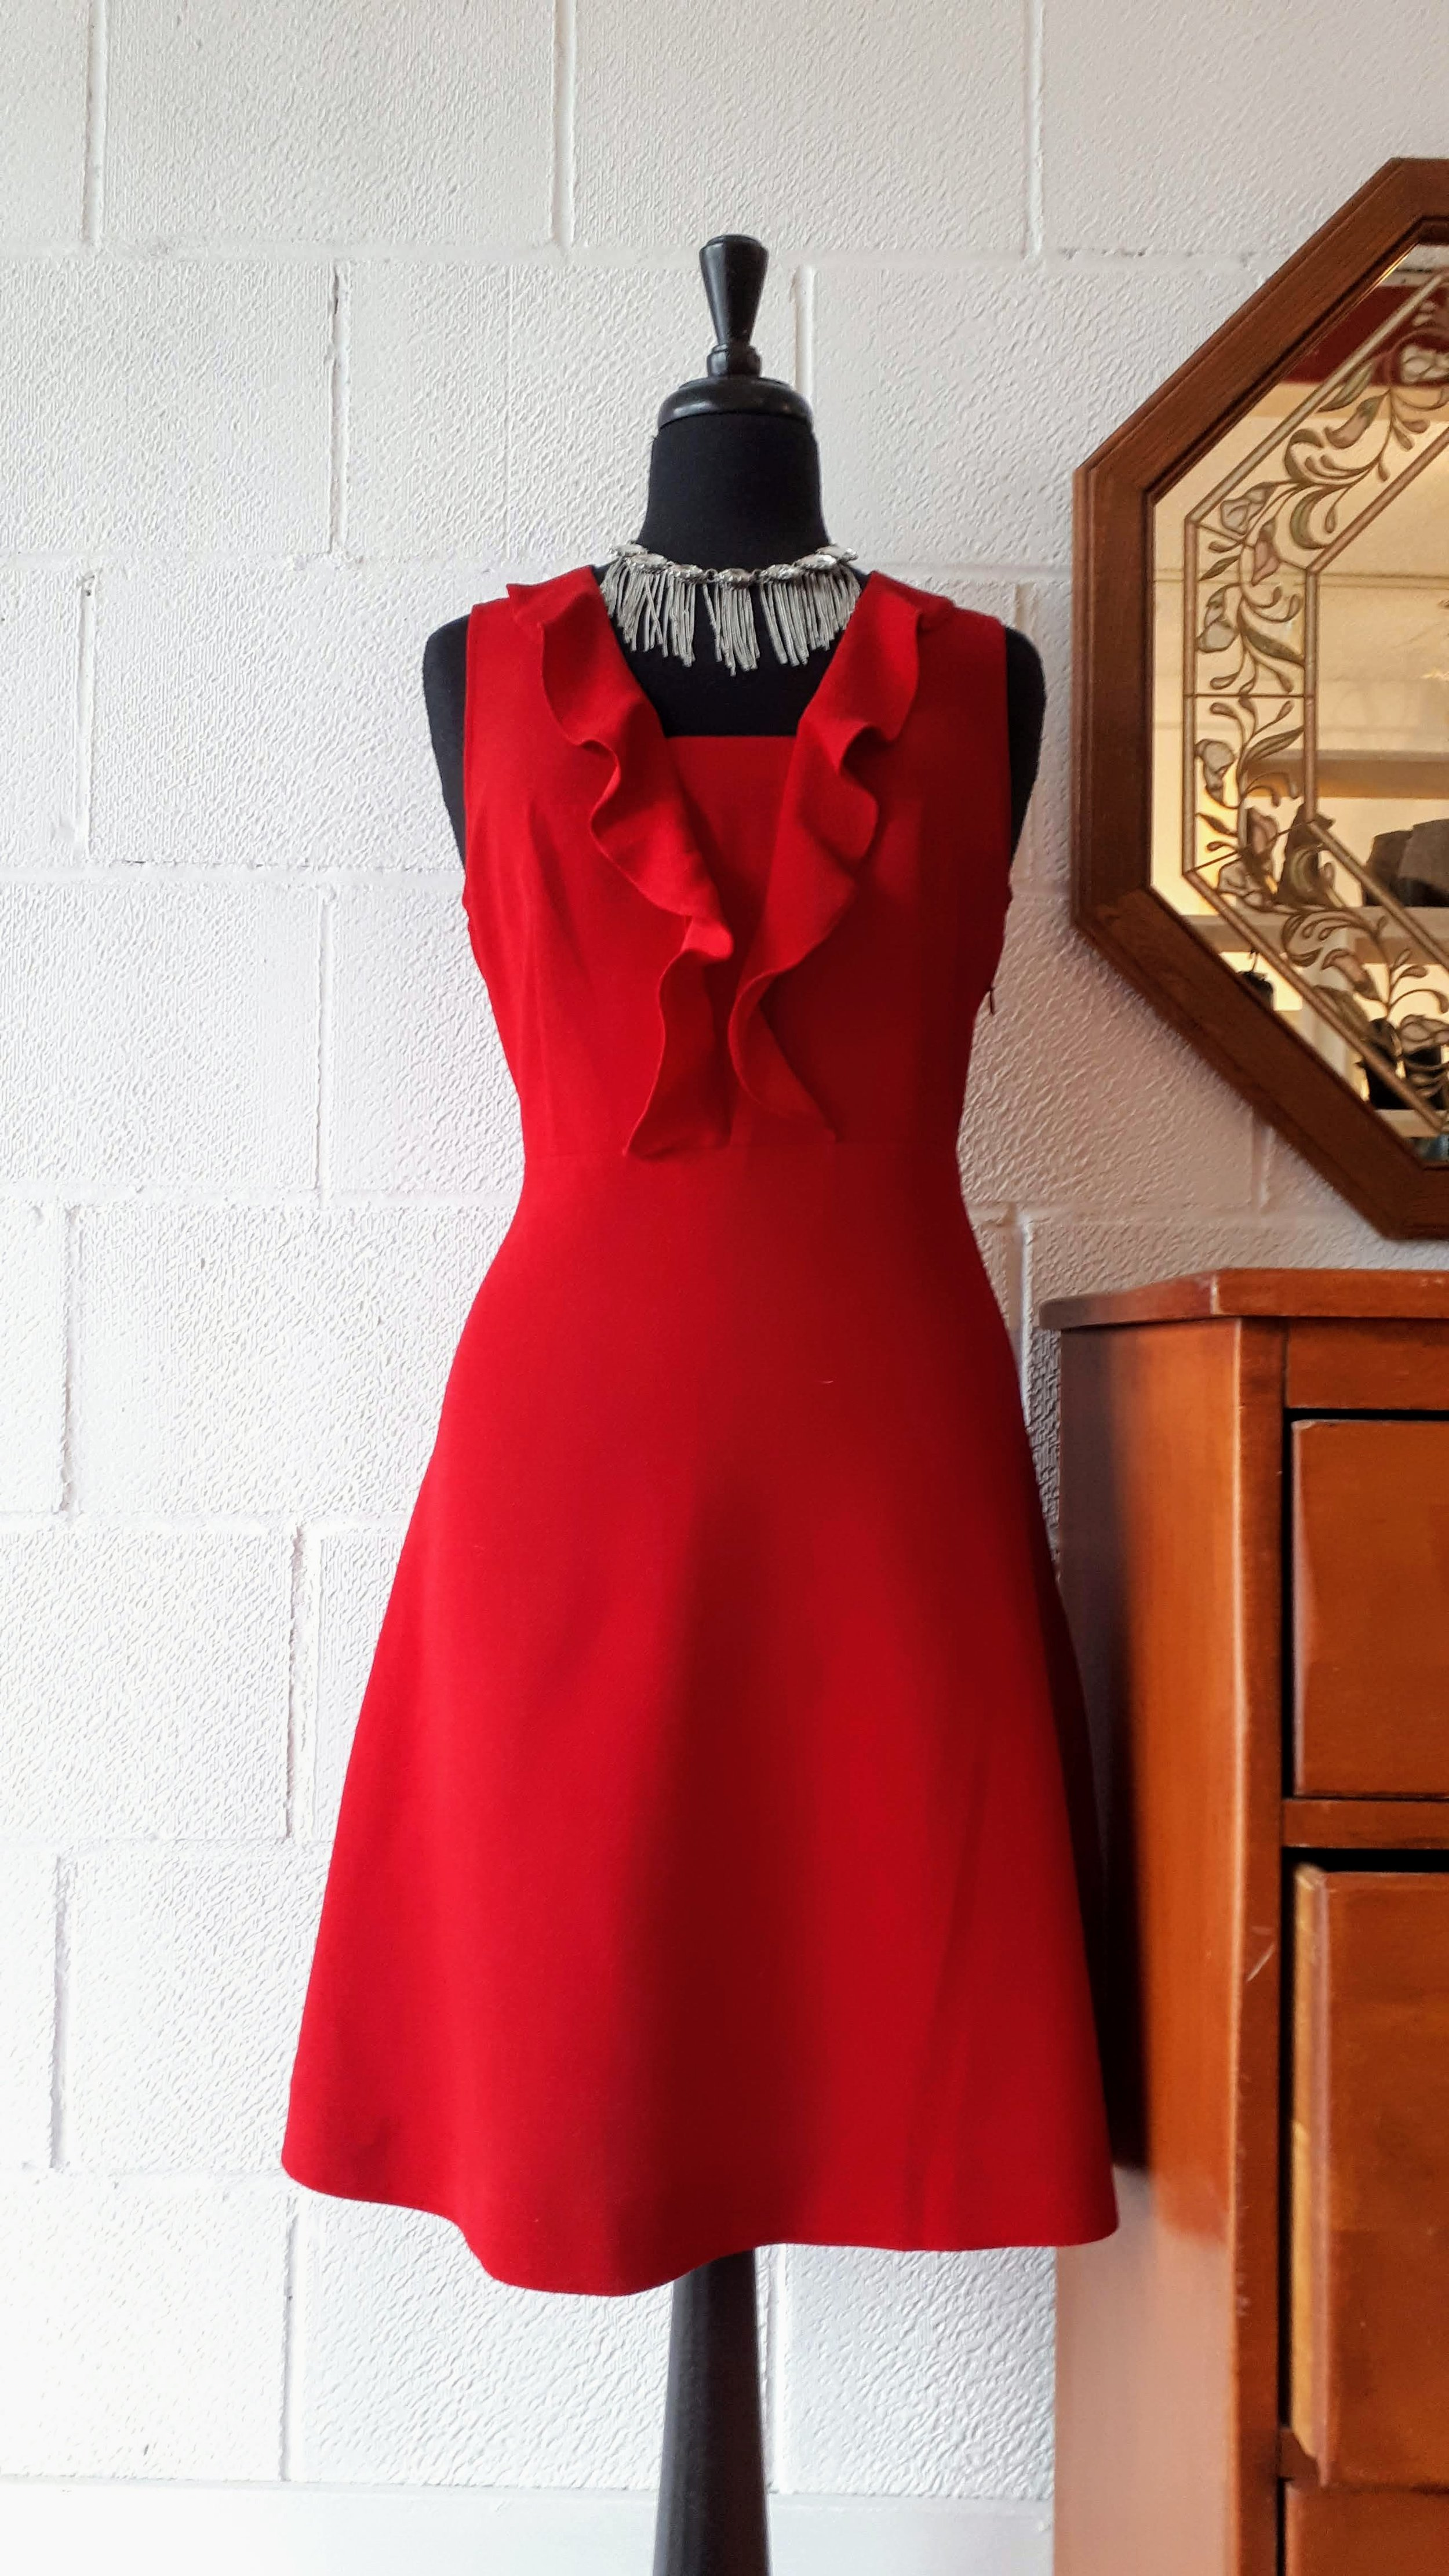 RW & Co. dress (NWT); Size 10, $38